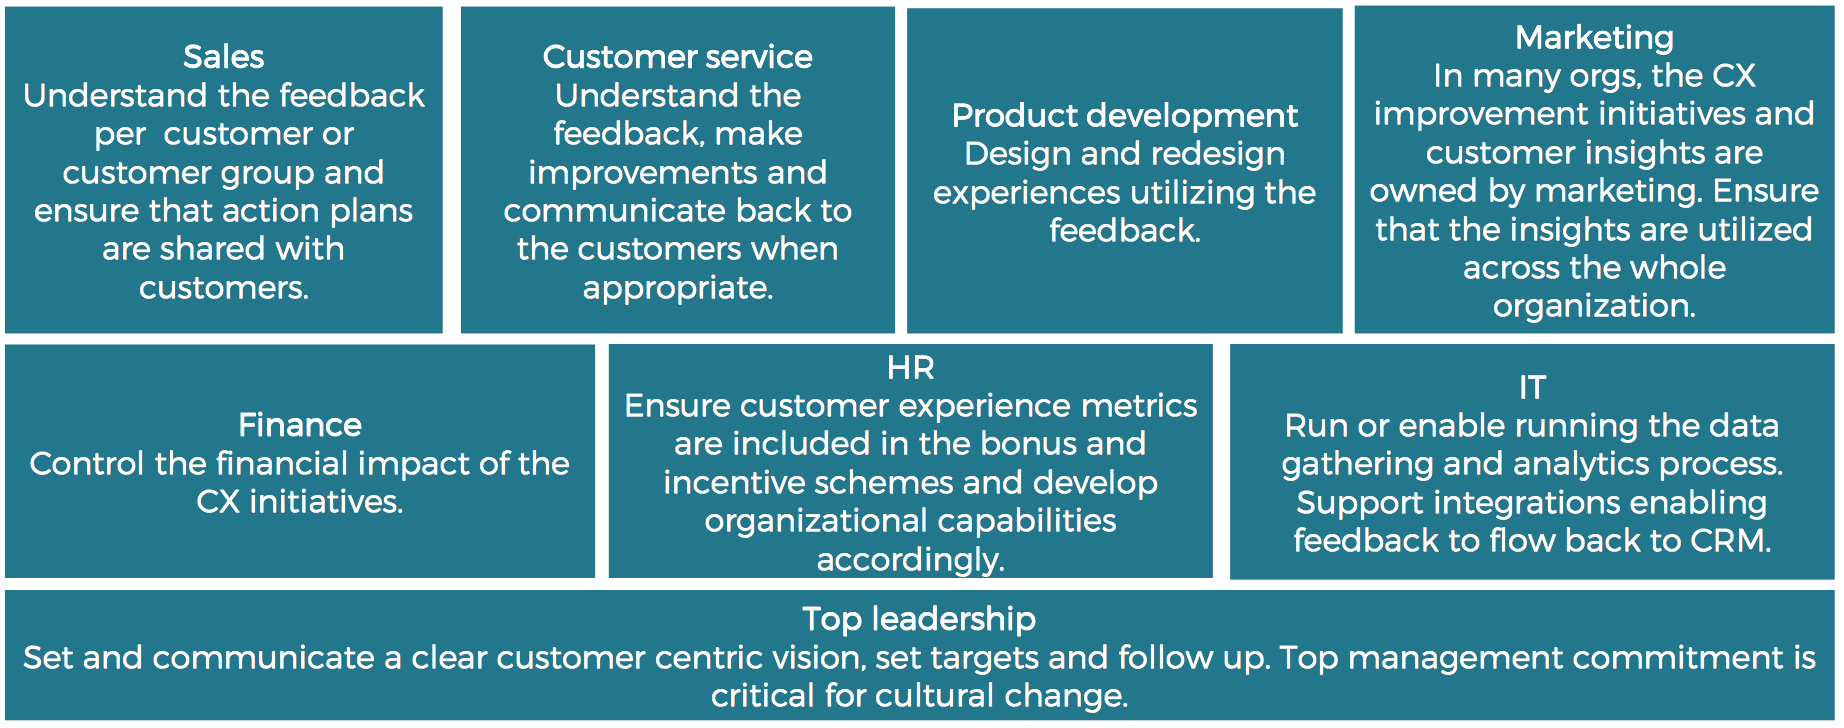 Who is responsible for customer experience in the company?